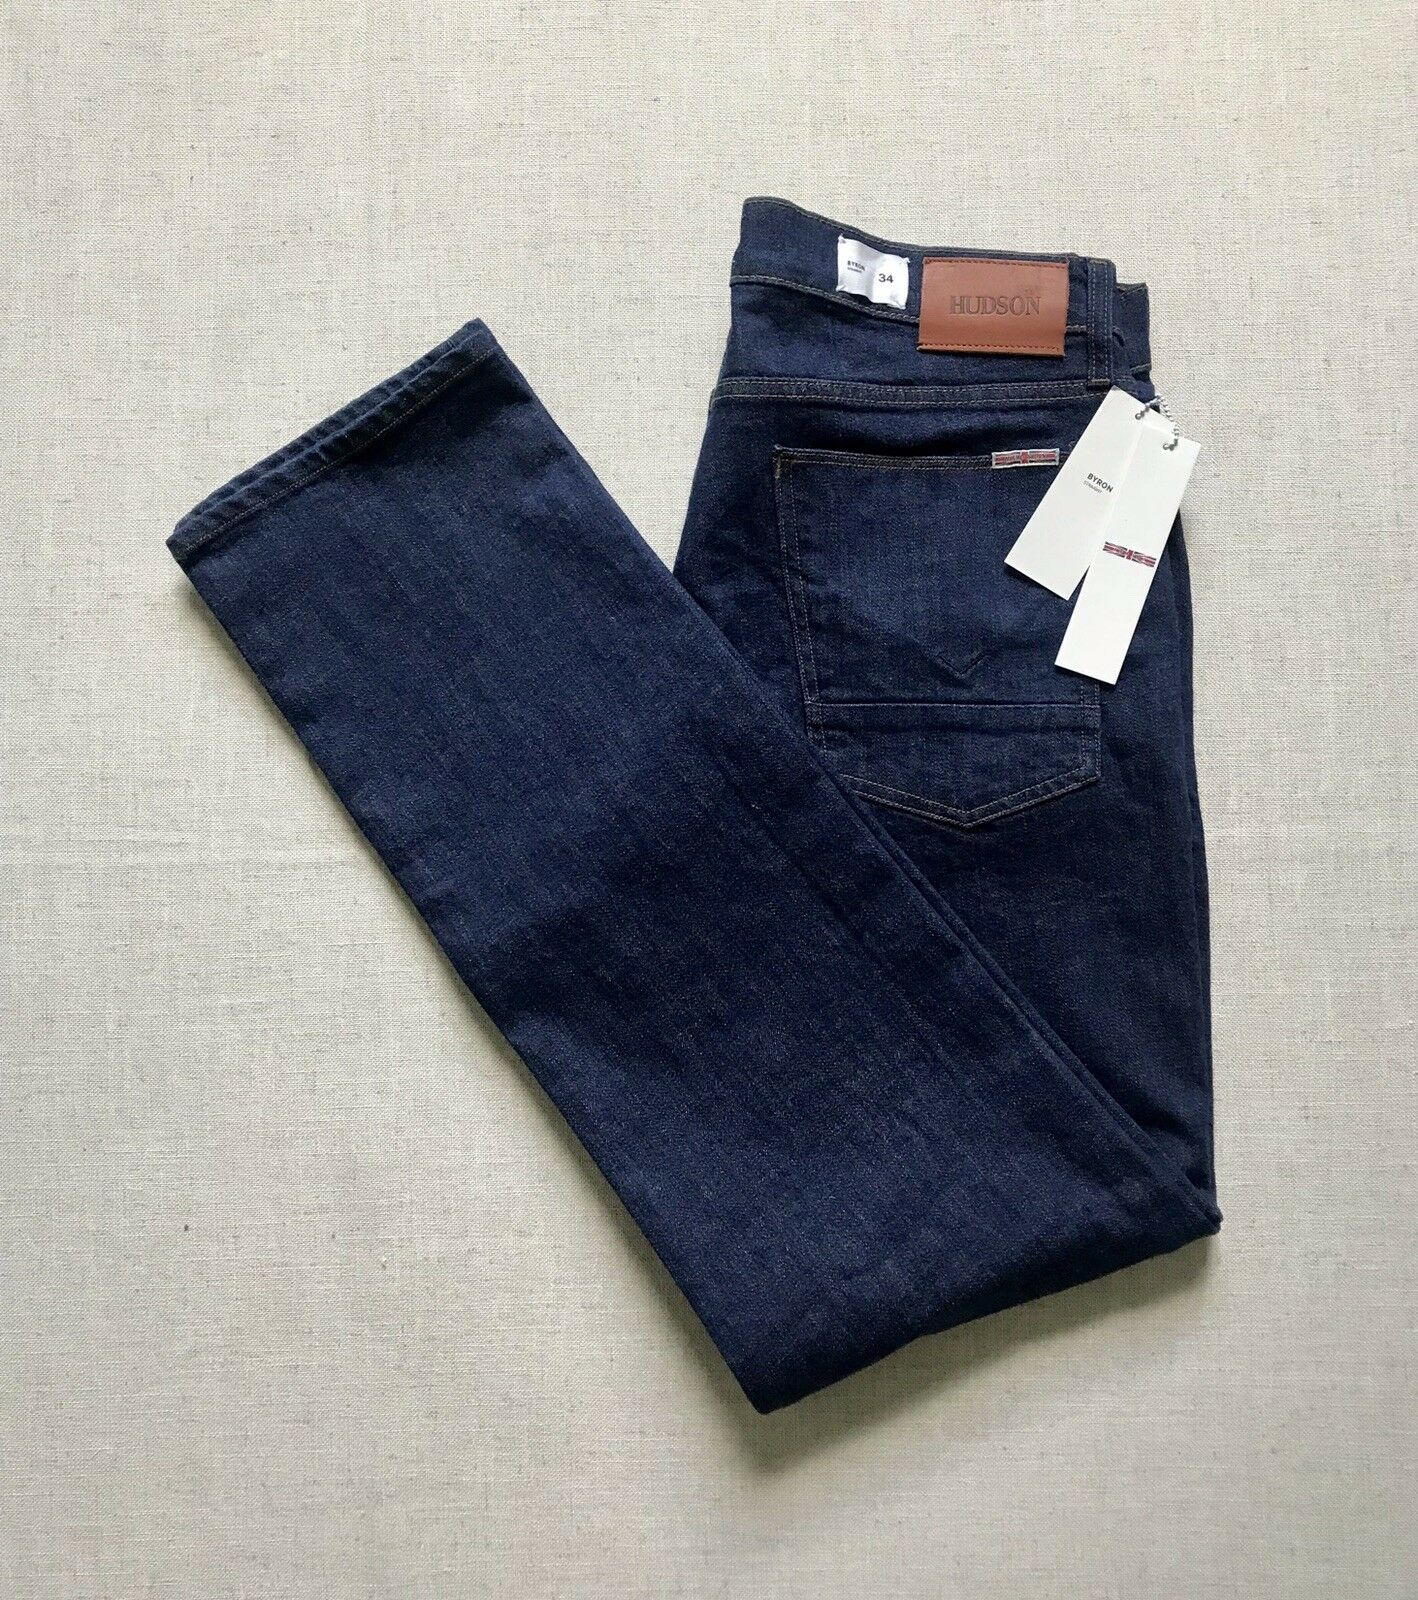 NWT MENS Size 34X34 HUDSON BYRON STRAIGHT LEG STRETCH  blueE DENIM JEANS